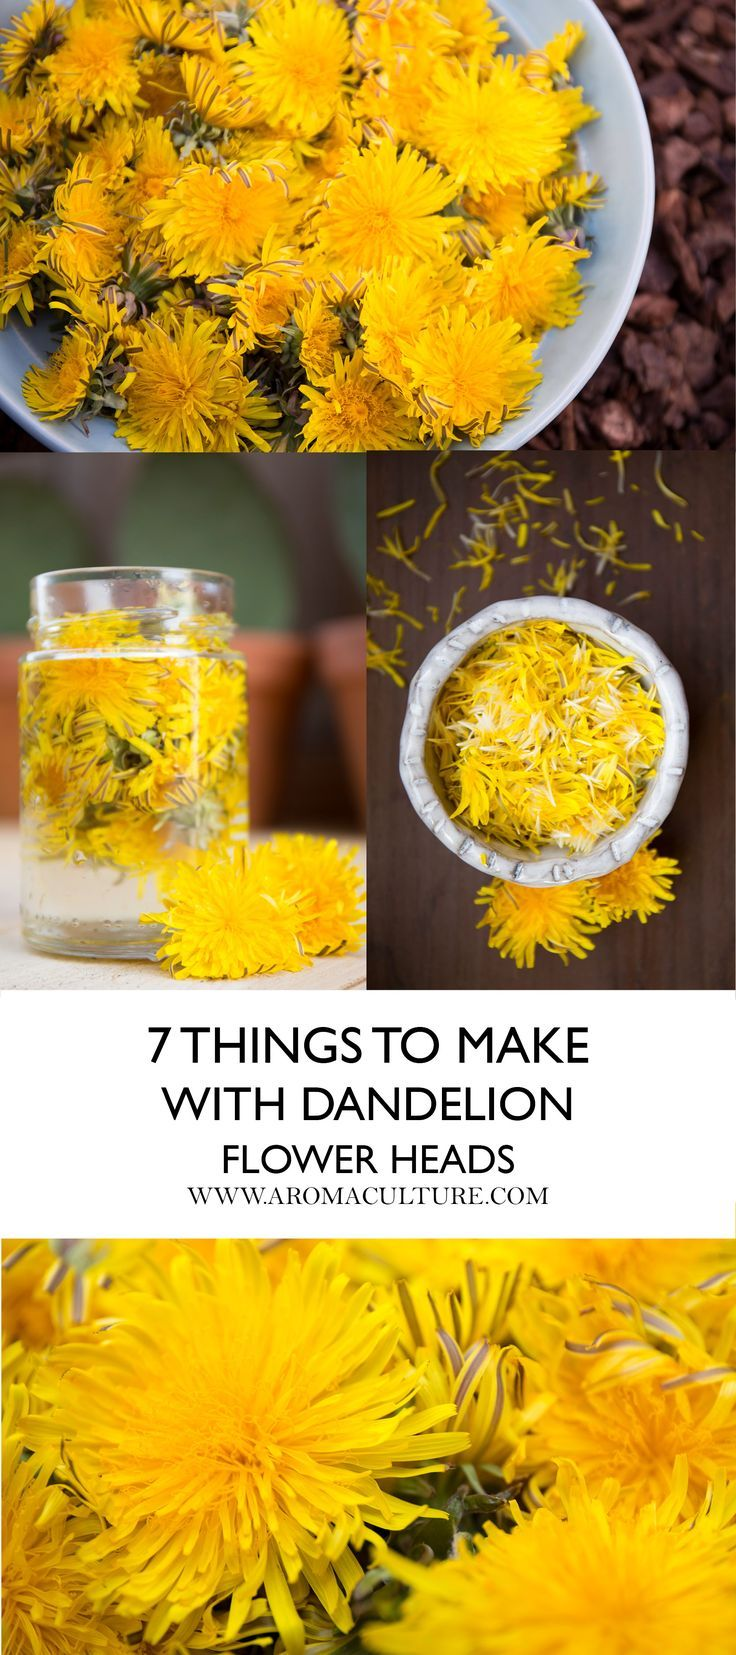 7 Things To Make With Dandelion Flower Heads Aroma Culture Dandelion Recipes Dandelion Flower Herbalism